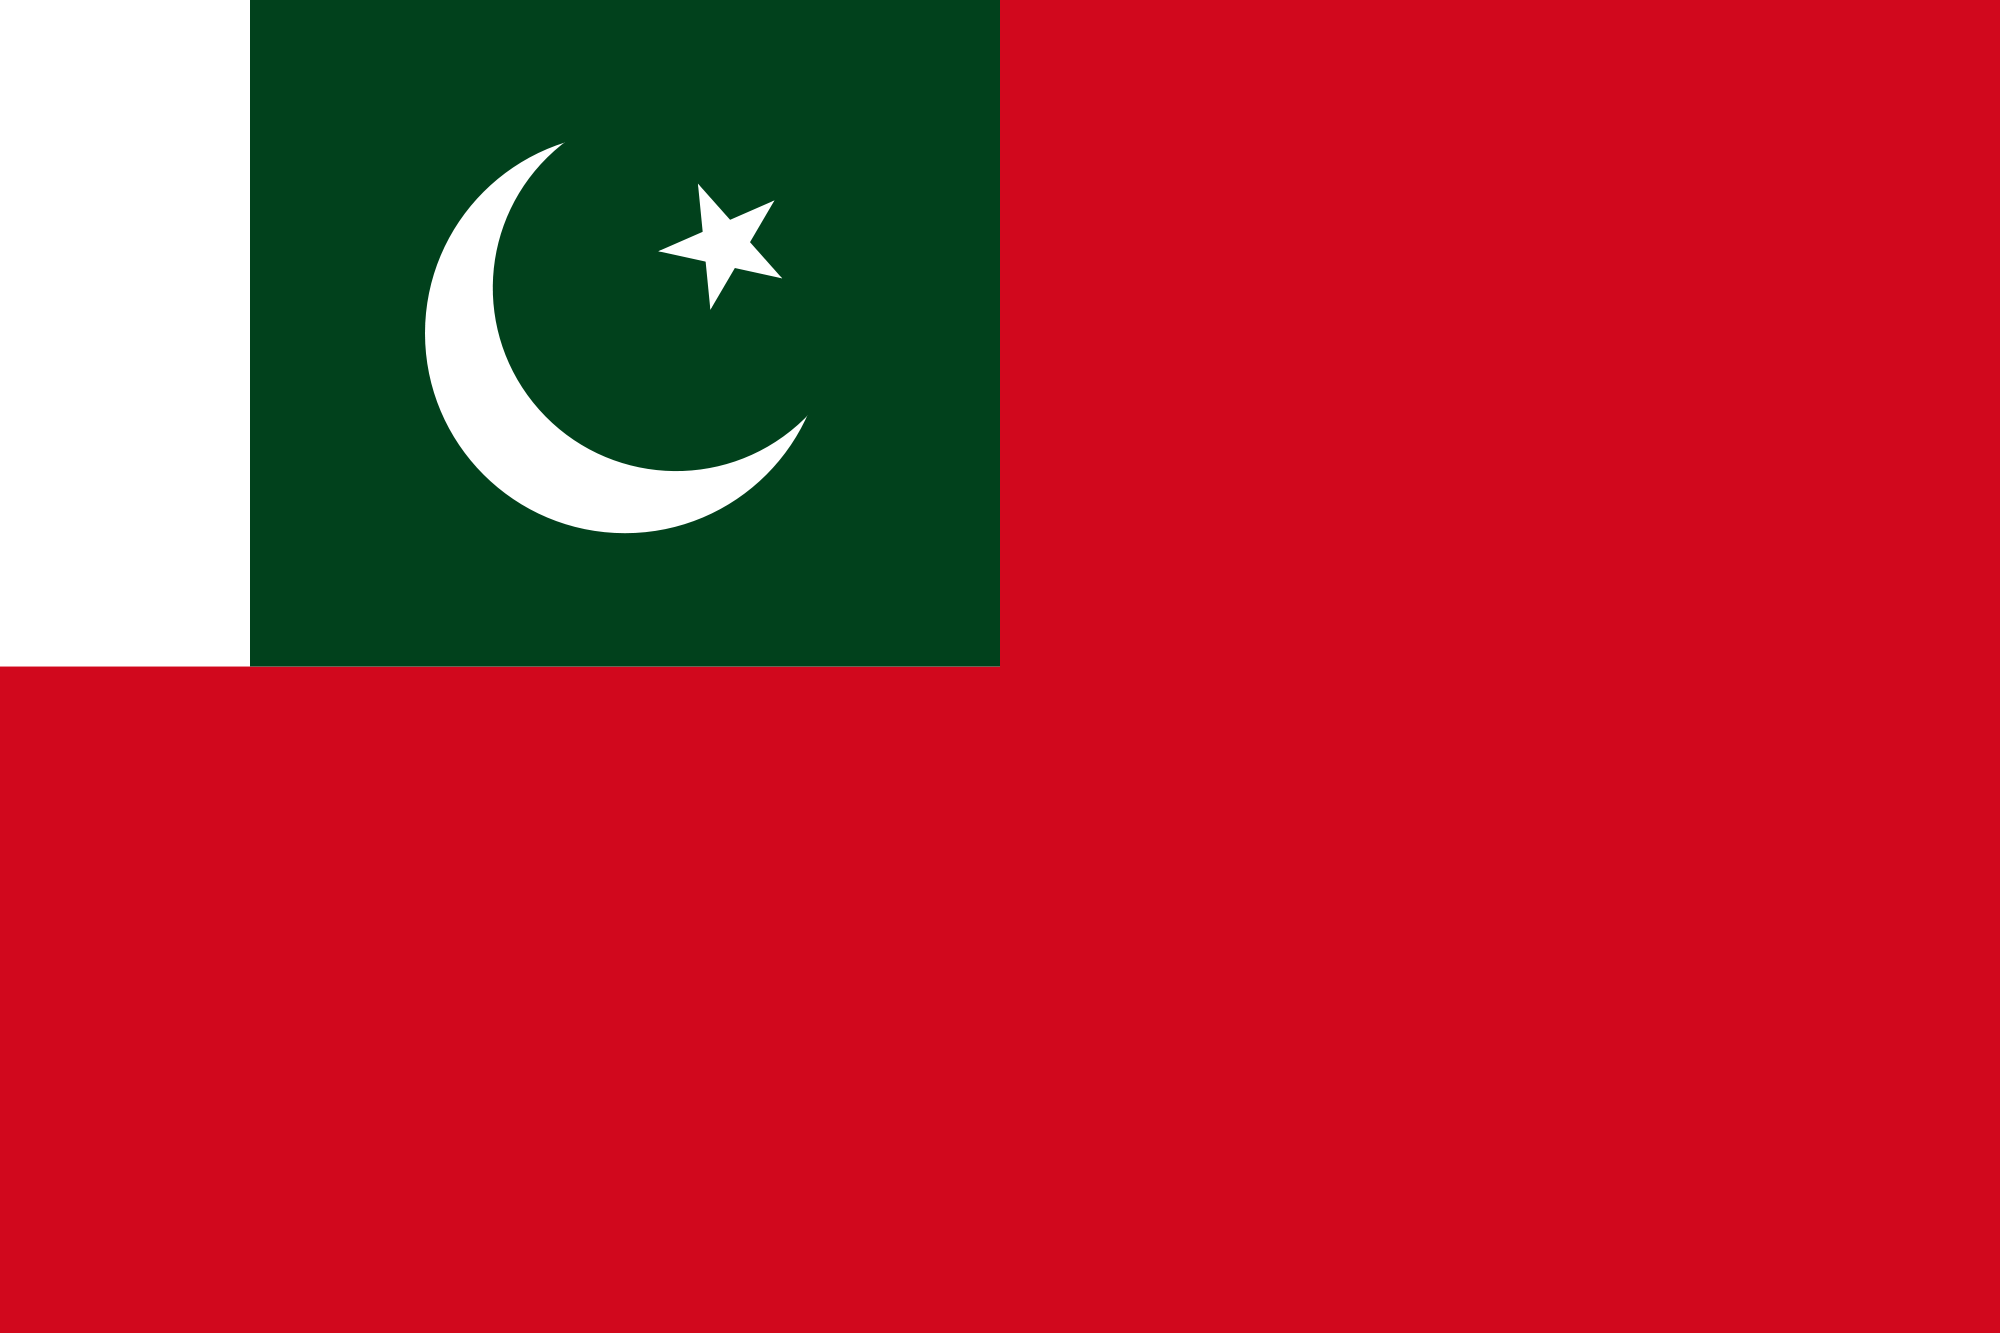 Pakistan (Civil ensign)